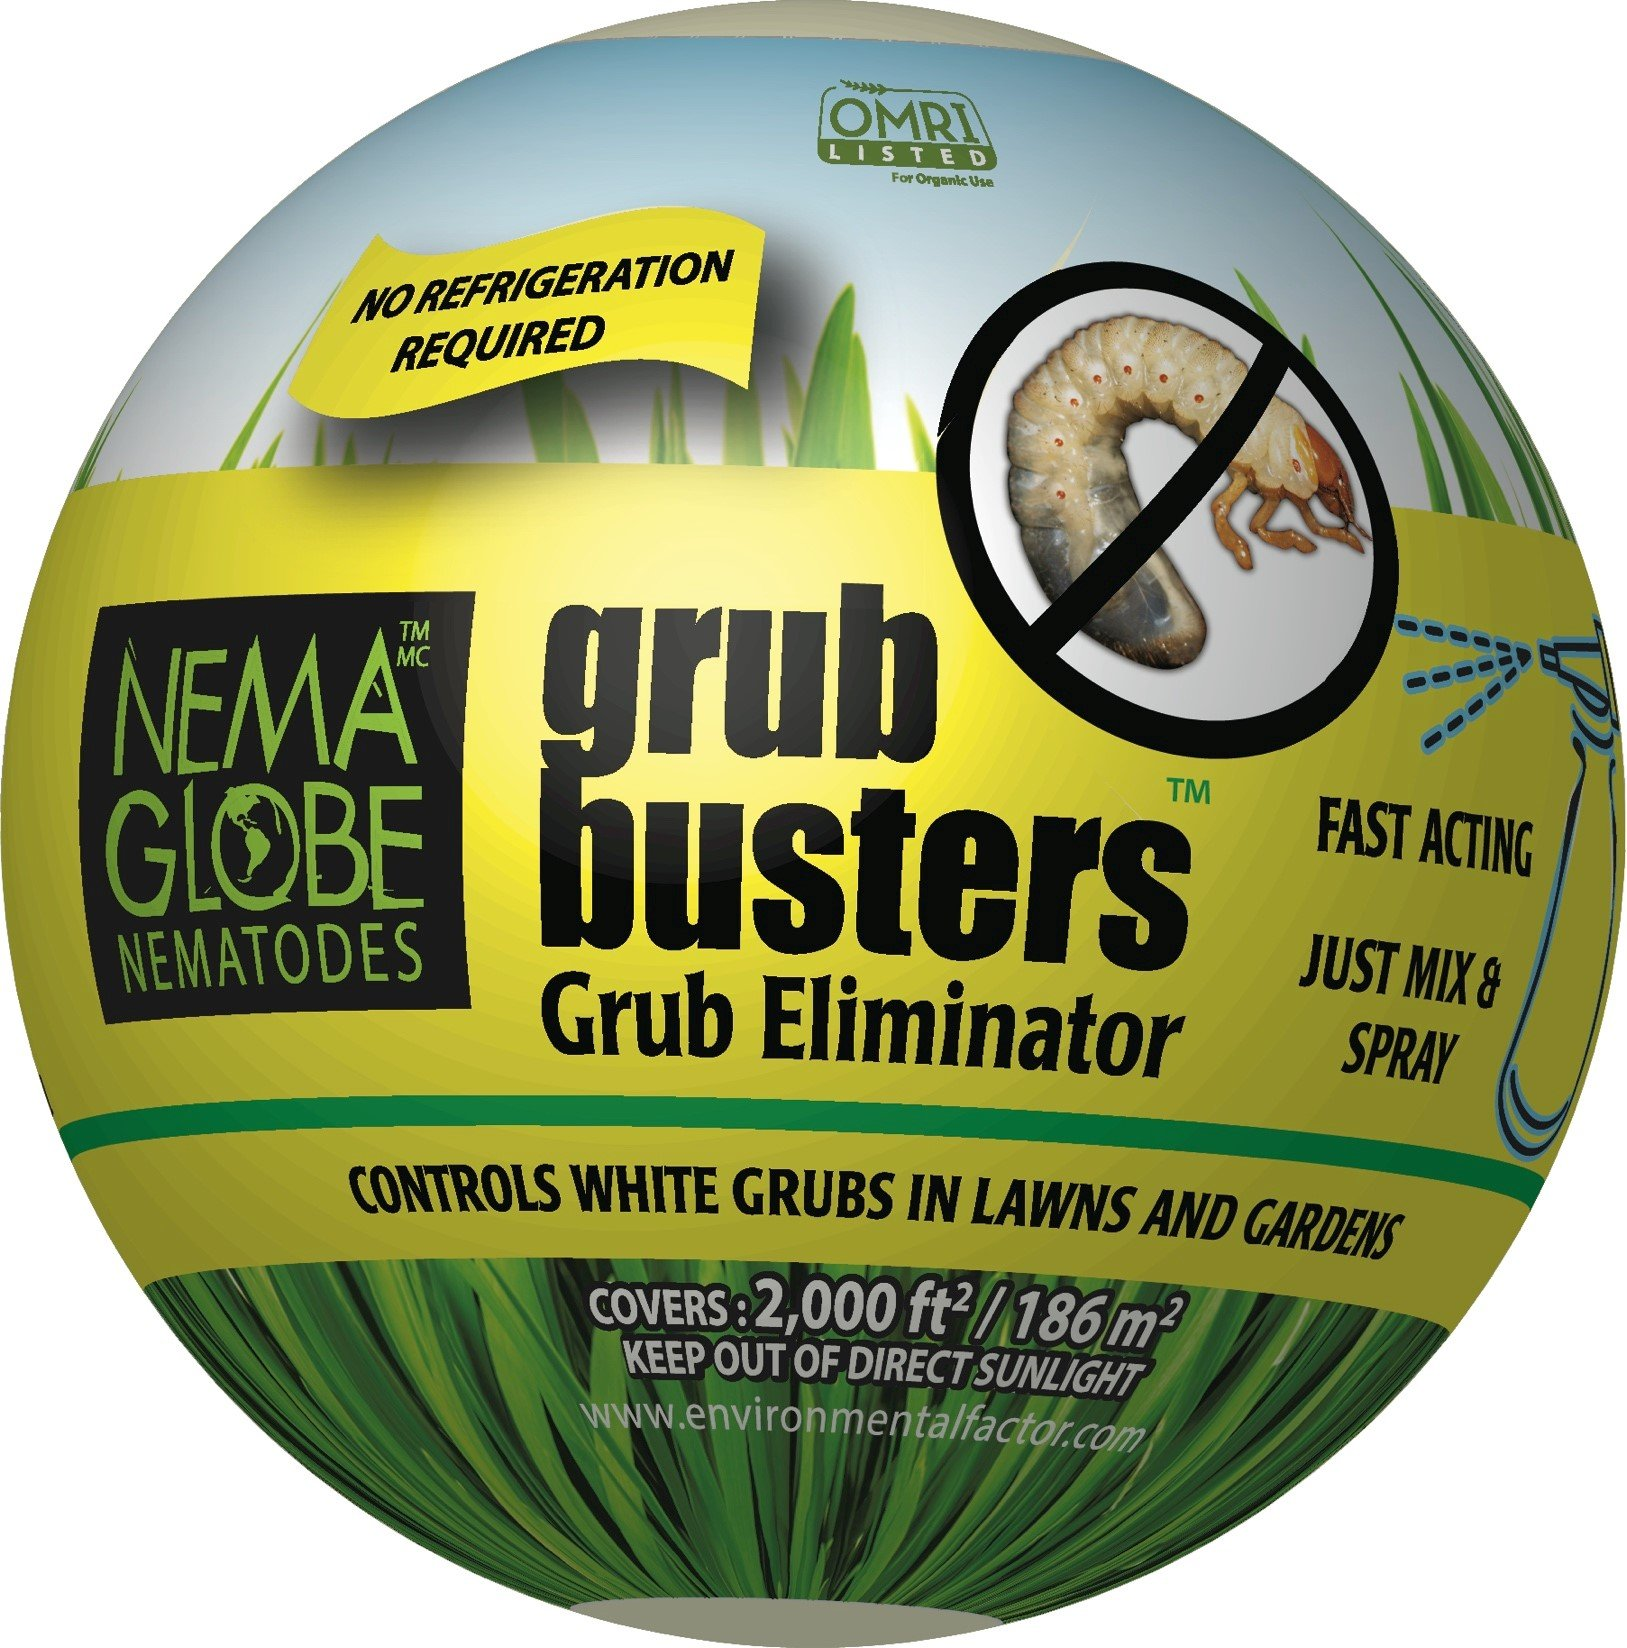 40 Million Beneficial Nematodes (H.bacteriophora) - Nema Globe Grub Buster for Pest Control - New ''No Refrigeration Required'' Formula by Nemaglobe